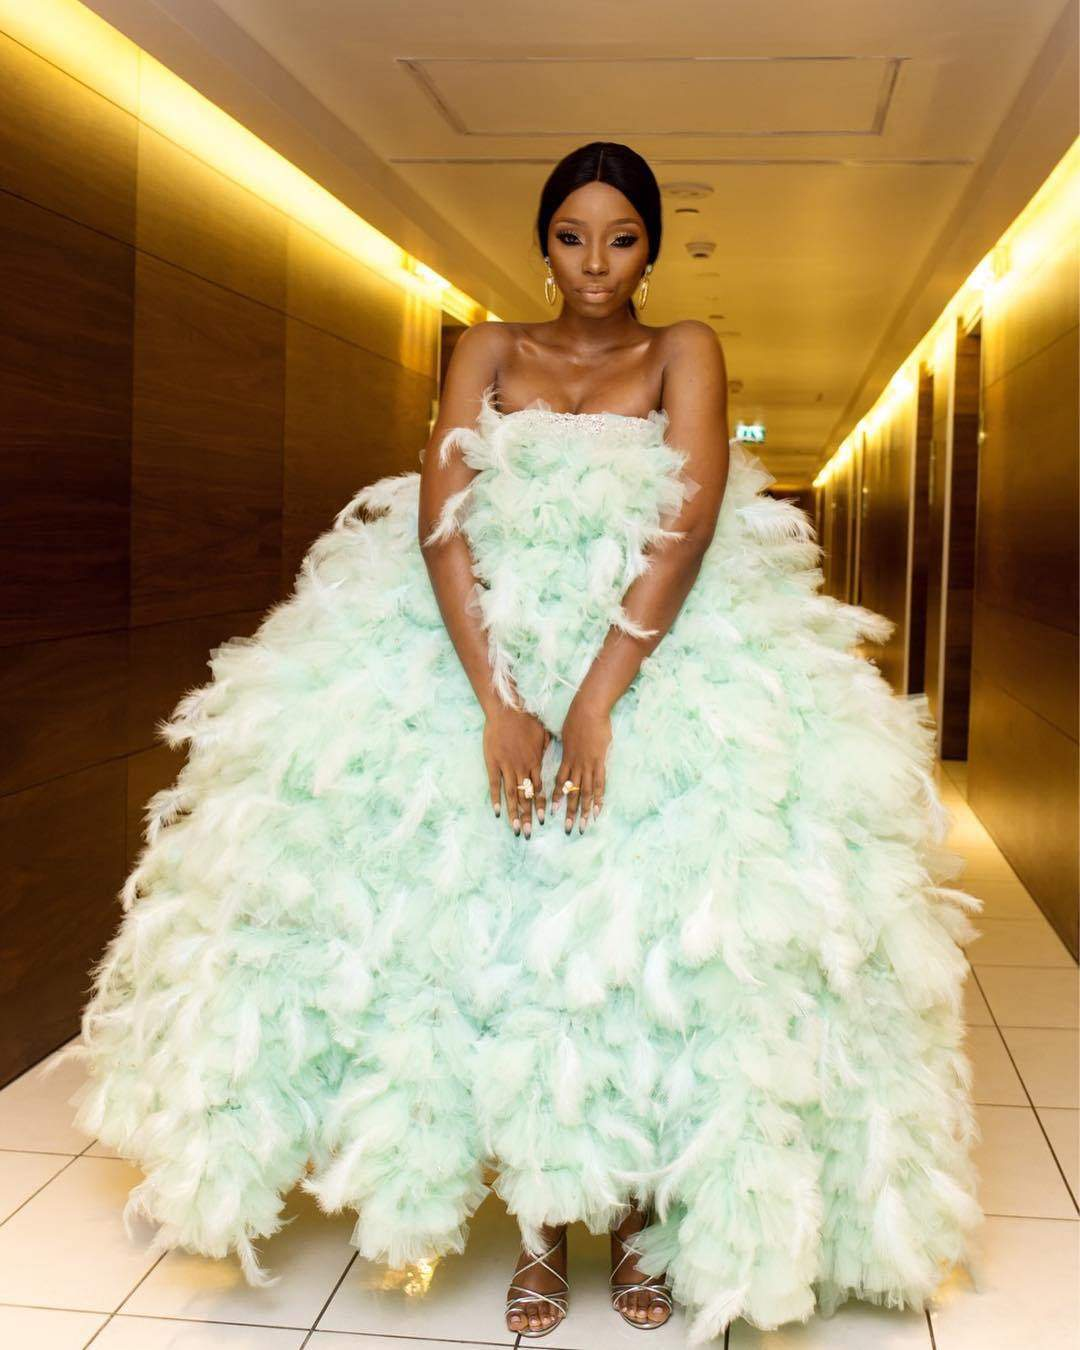 Kemi Olunloyo reacts to BamBam #AMVCA2018 outfit